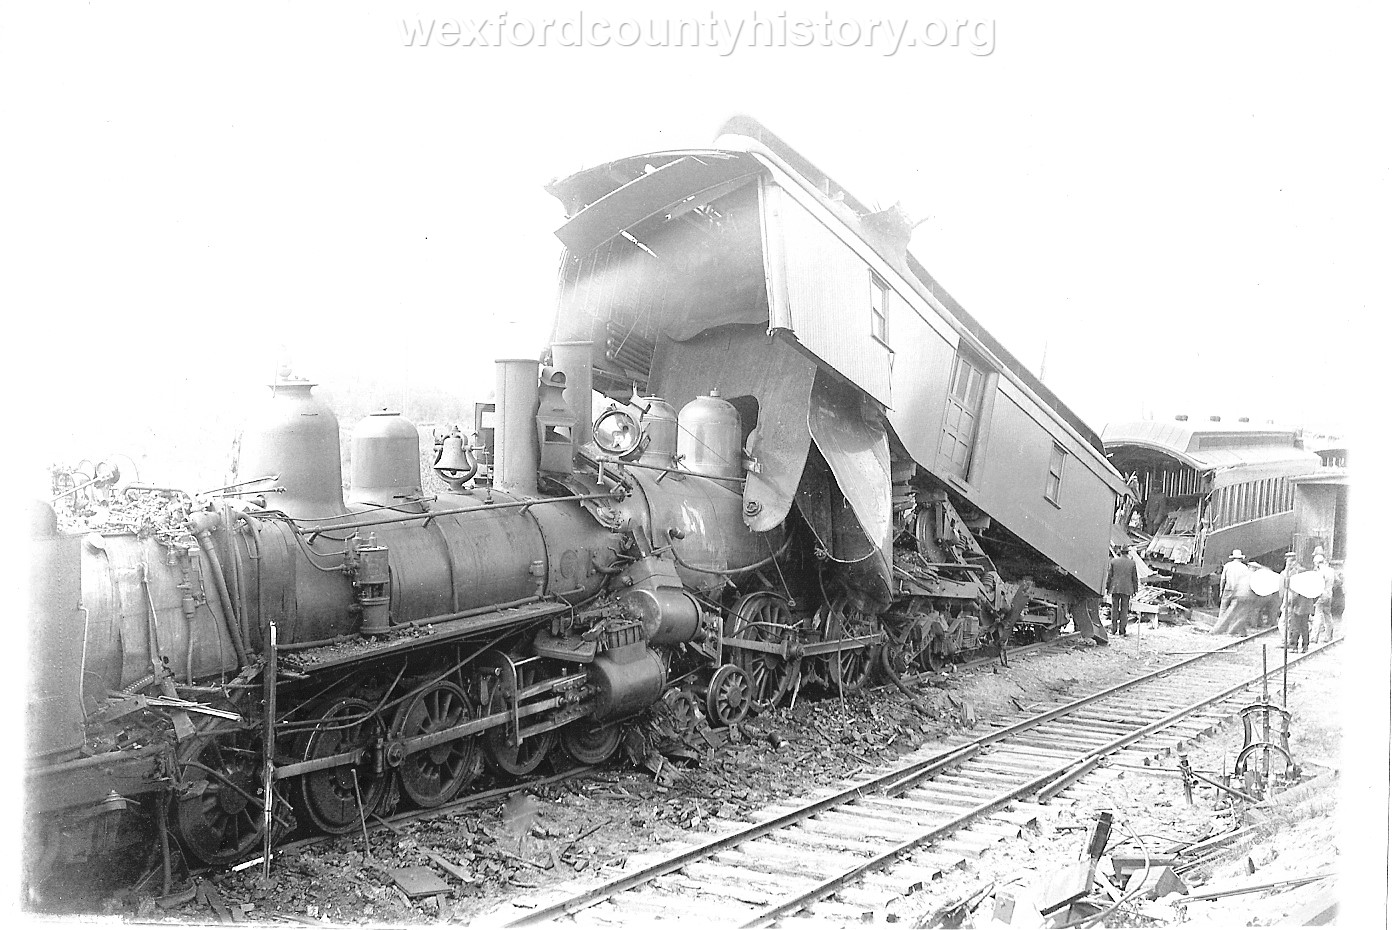 Cadillac-Railroad-Grand-Rapids-and-Indiana-Train-Wreck-1901-DS9ts7219-3